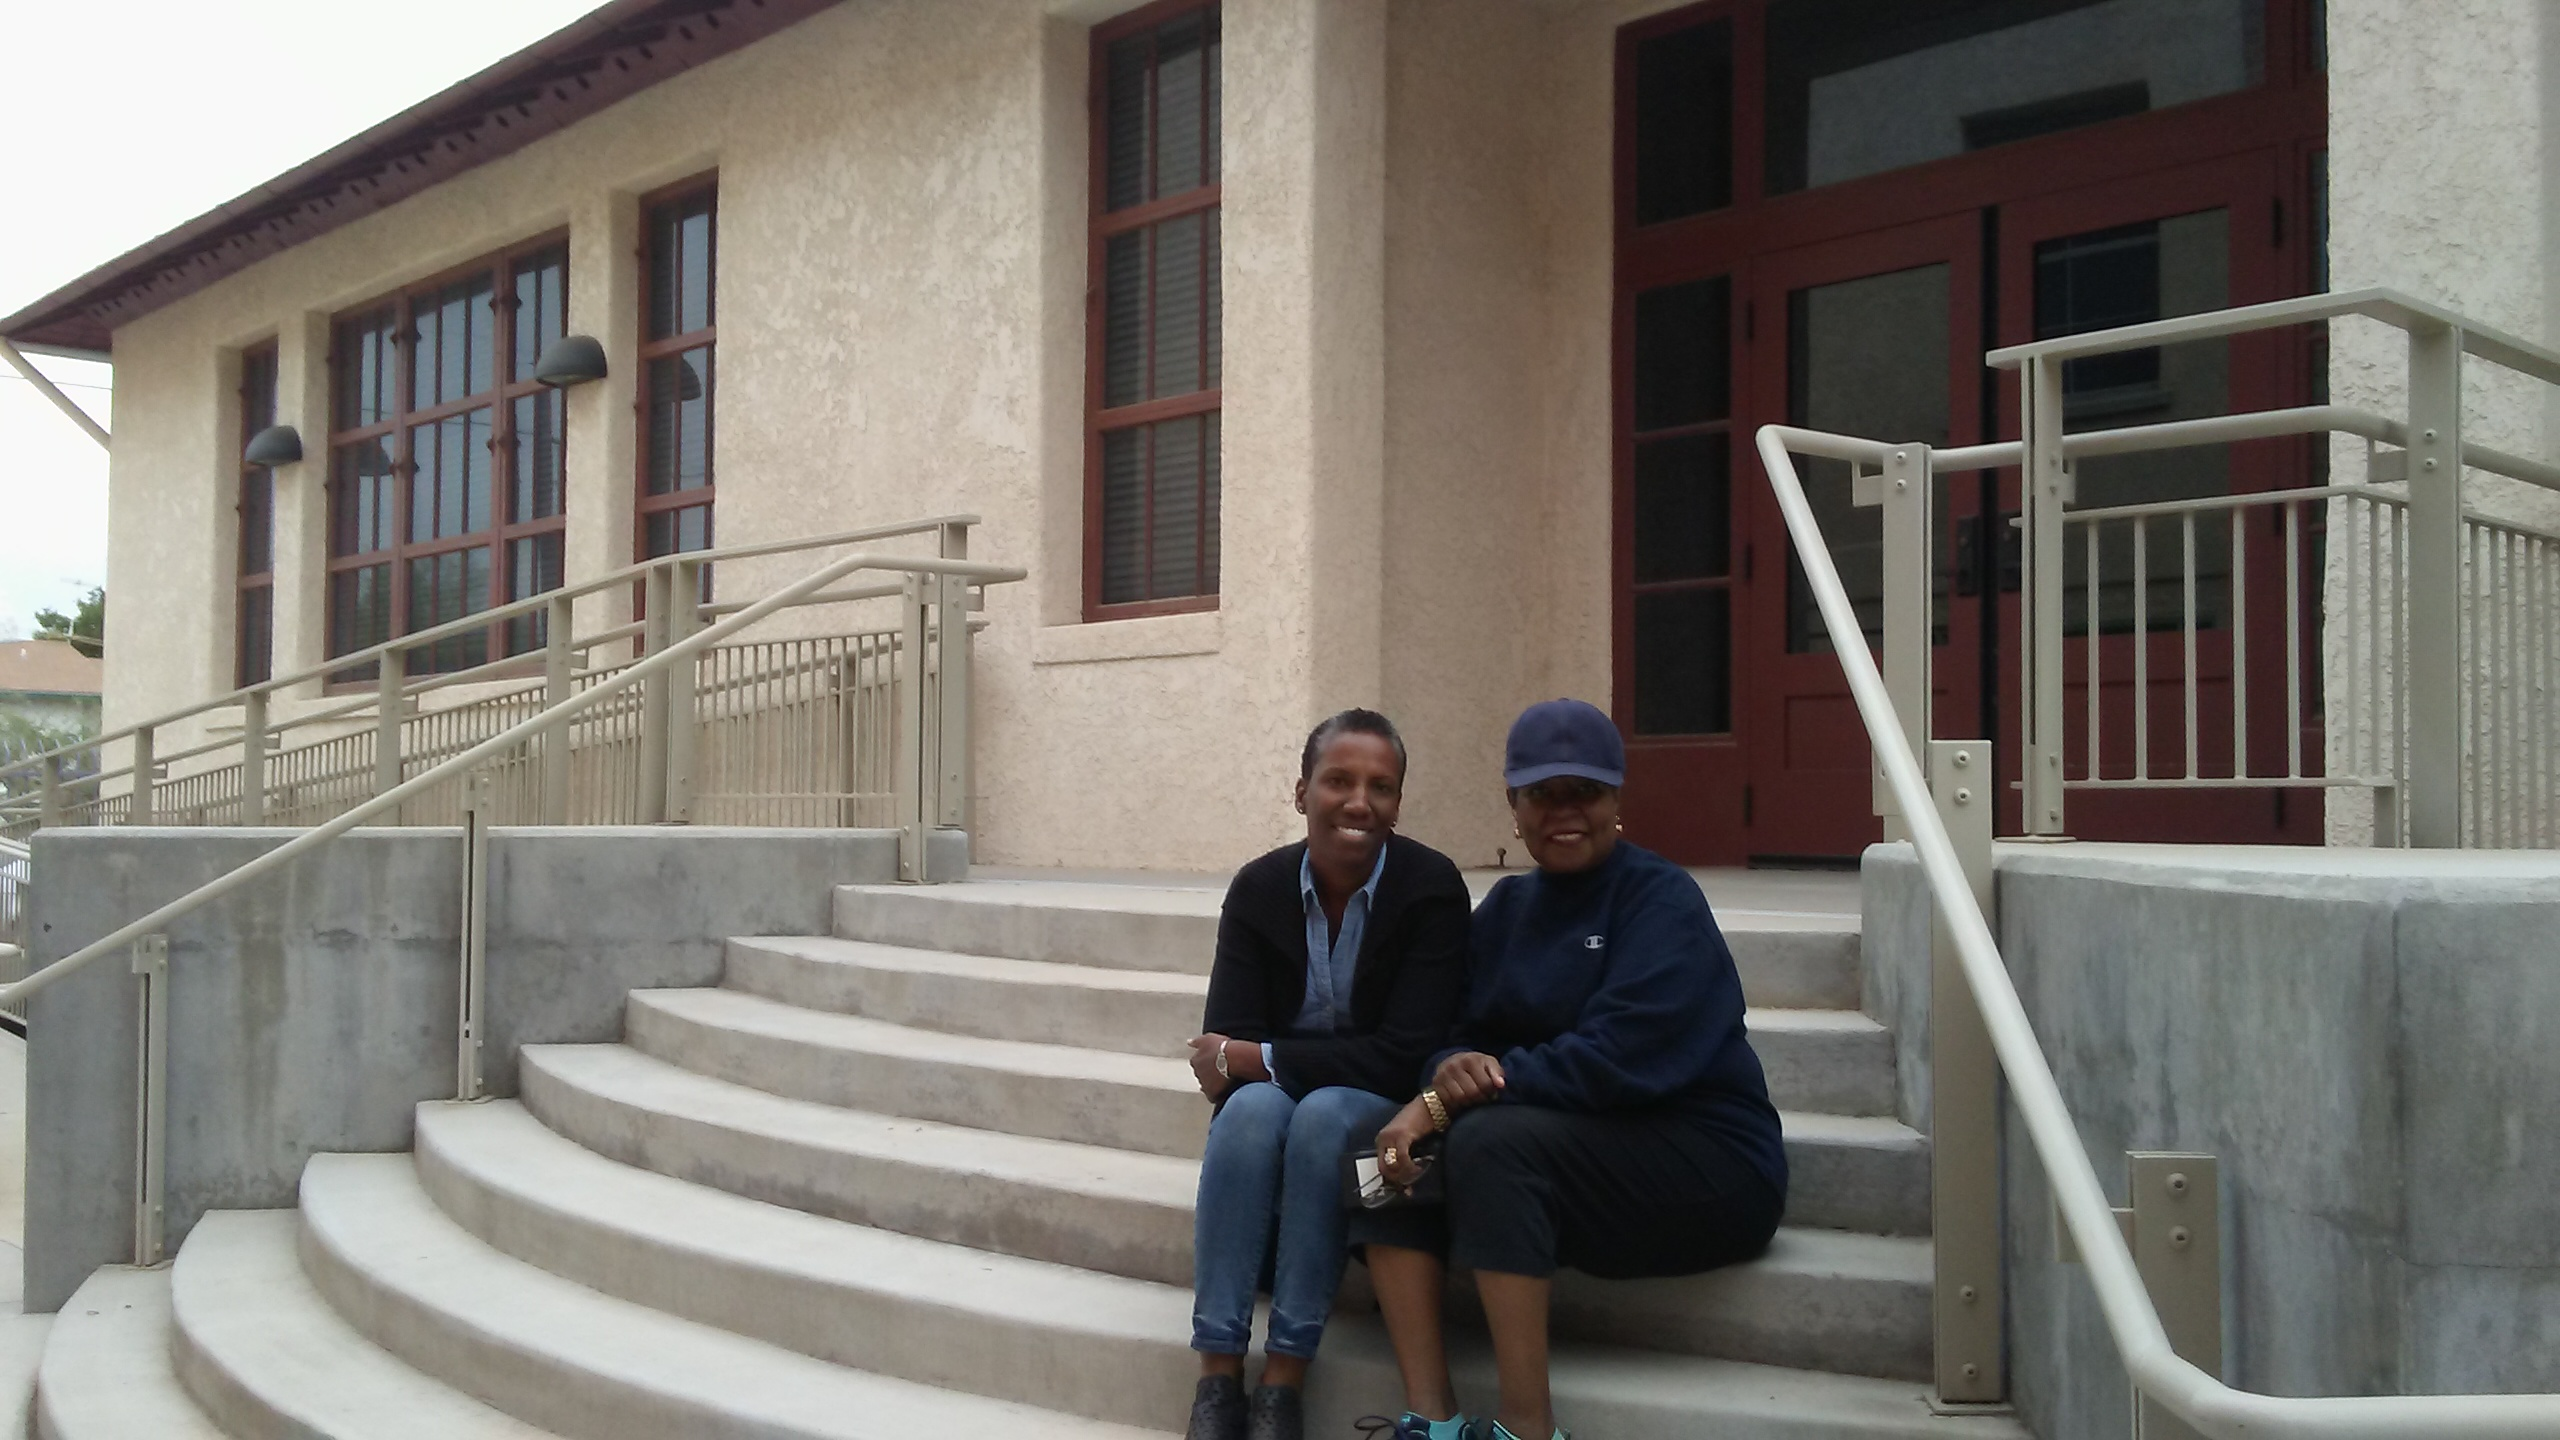 SBS Community Impact Fellow Debi Chess Mabie and Chyrl Lander on the steps of the Dunbar Pavilion